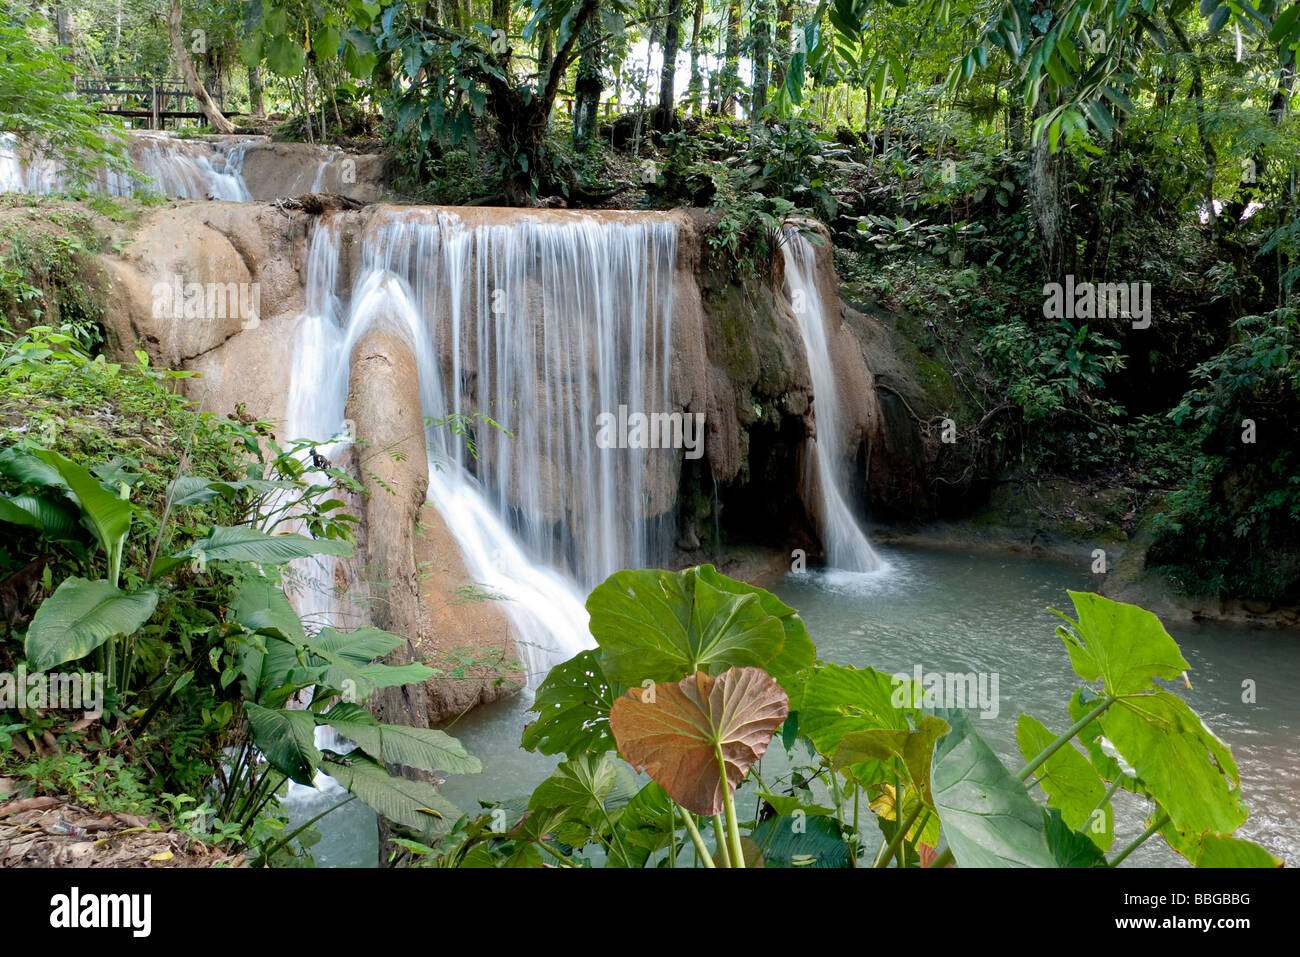 Waterfalls of Agua Azul in Palenque, Chiapas, Mexico, Central America - Stock Image